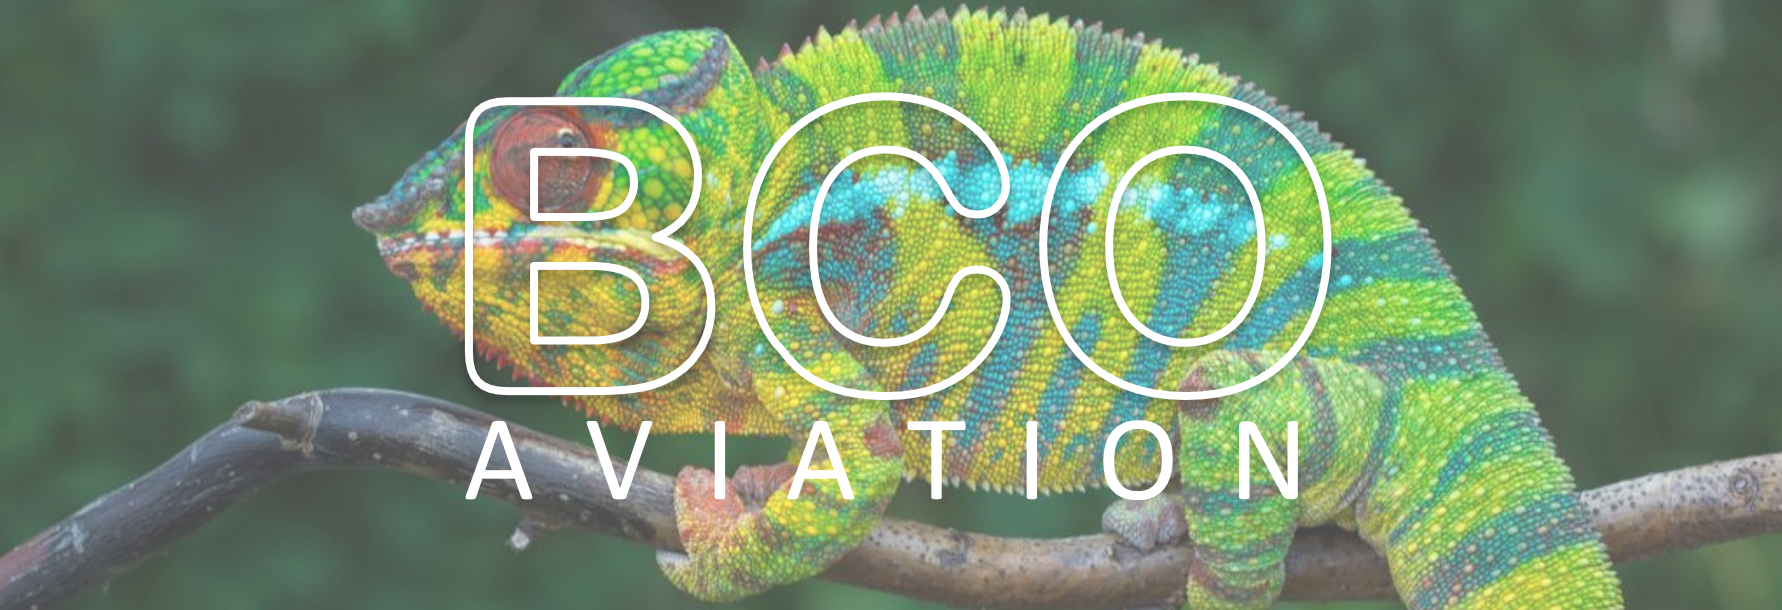 Illustration for: Why is the chameleon representing BCO Aviation?